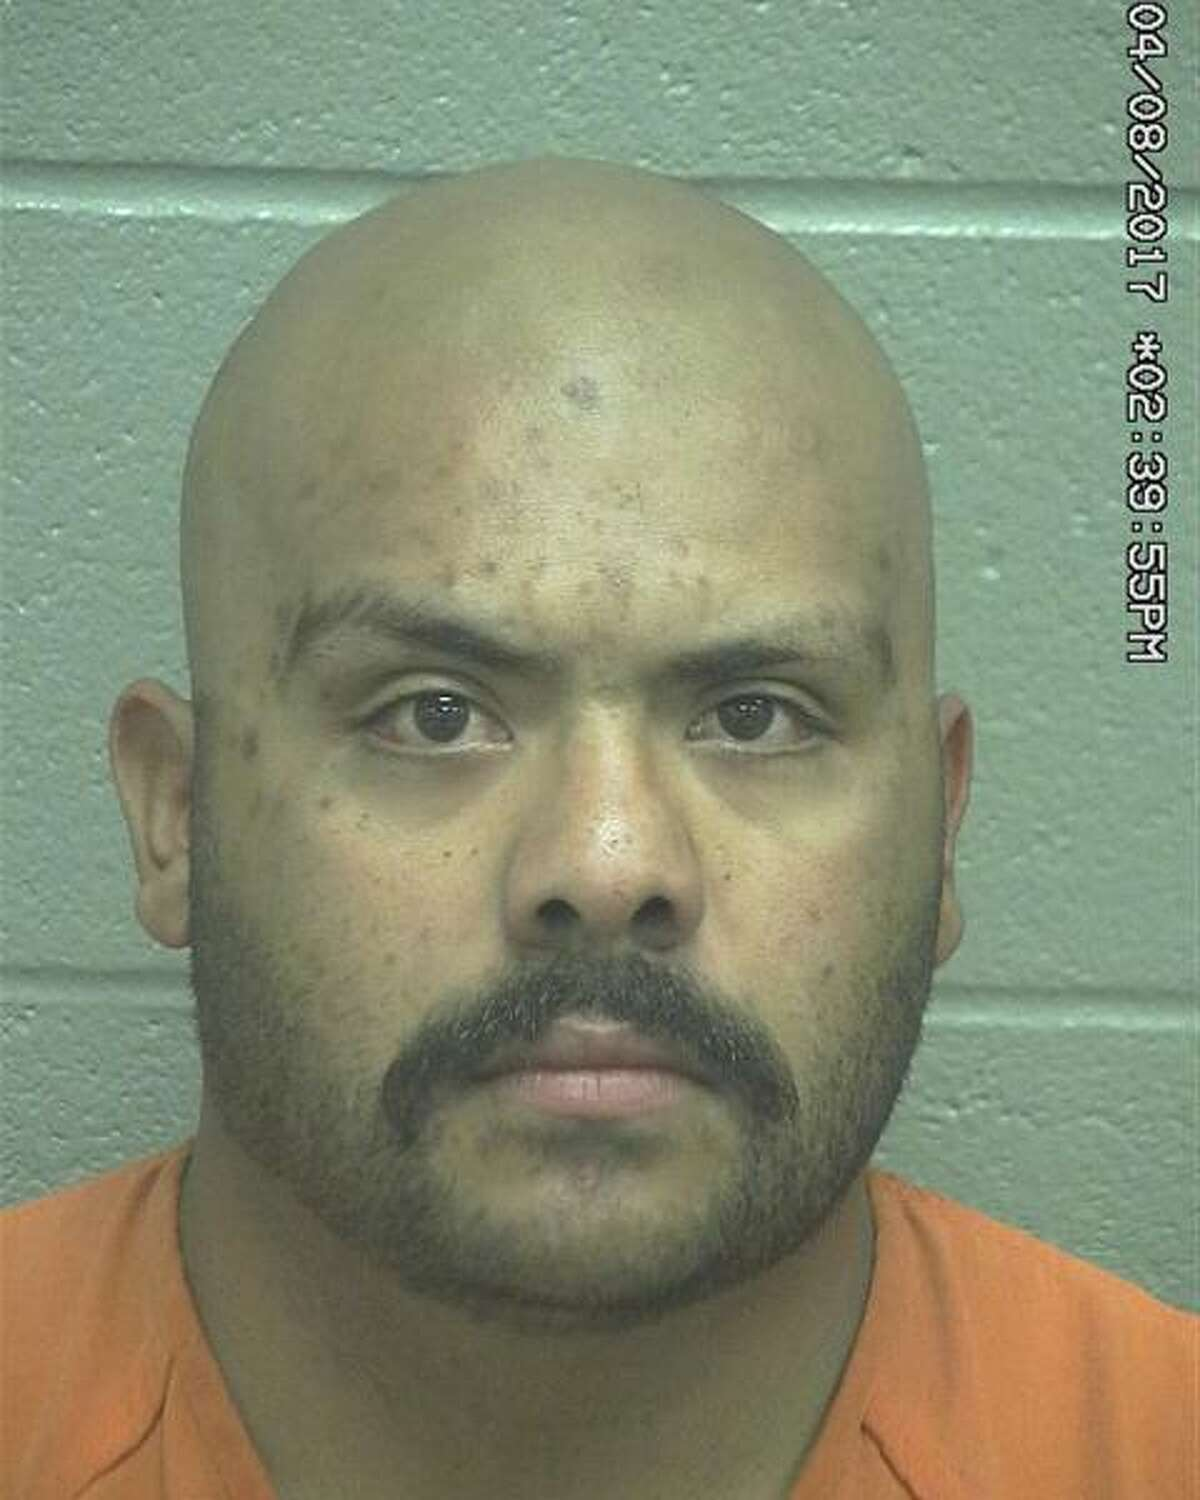 Juan Manuel Aguilar Jr. was convicted of the second-degree felony after testimony revealed that on Aug. 14, 2017 he pointed a gun near his wife's face.